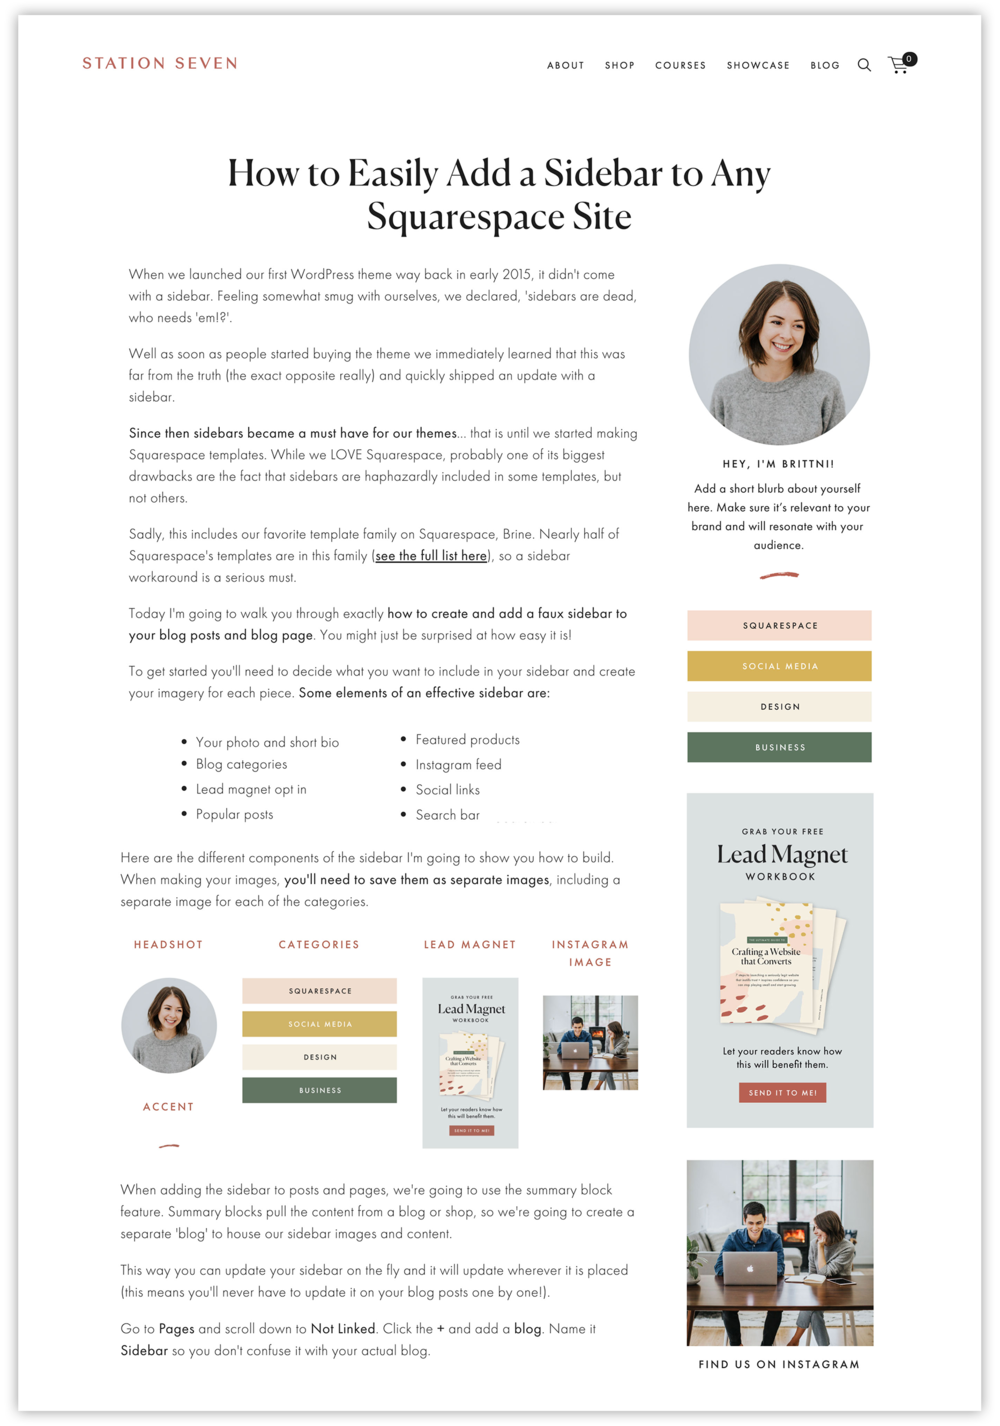 """How to Easily Add a Sidebar to Any Squarespace Site"" by  Station Seven"